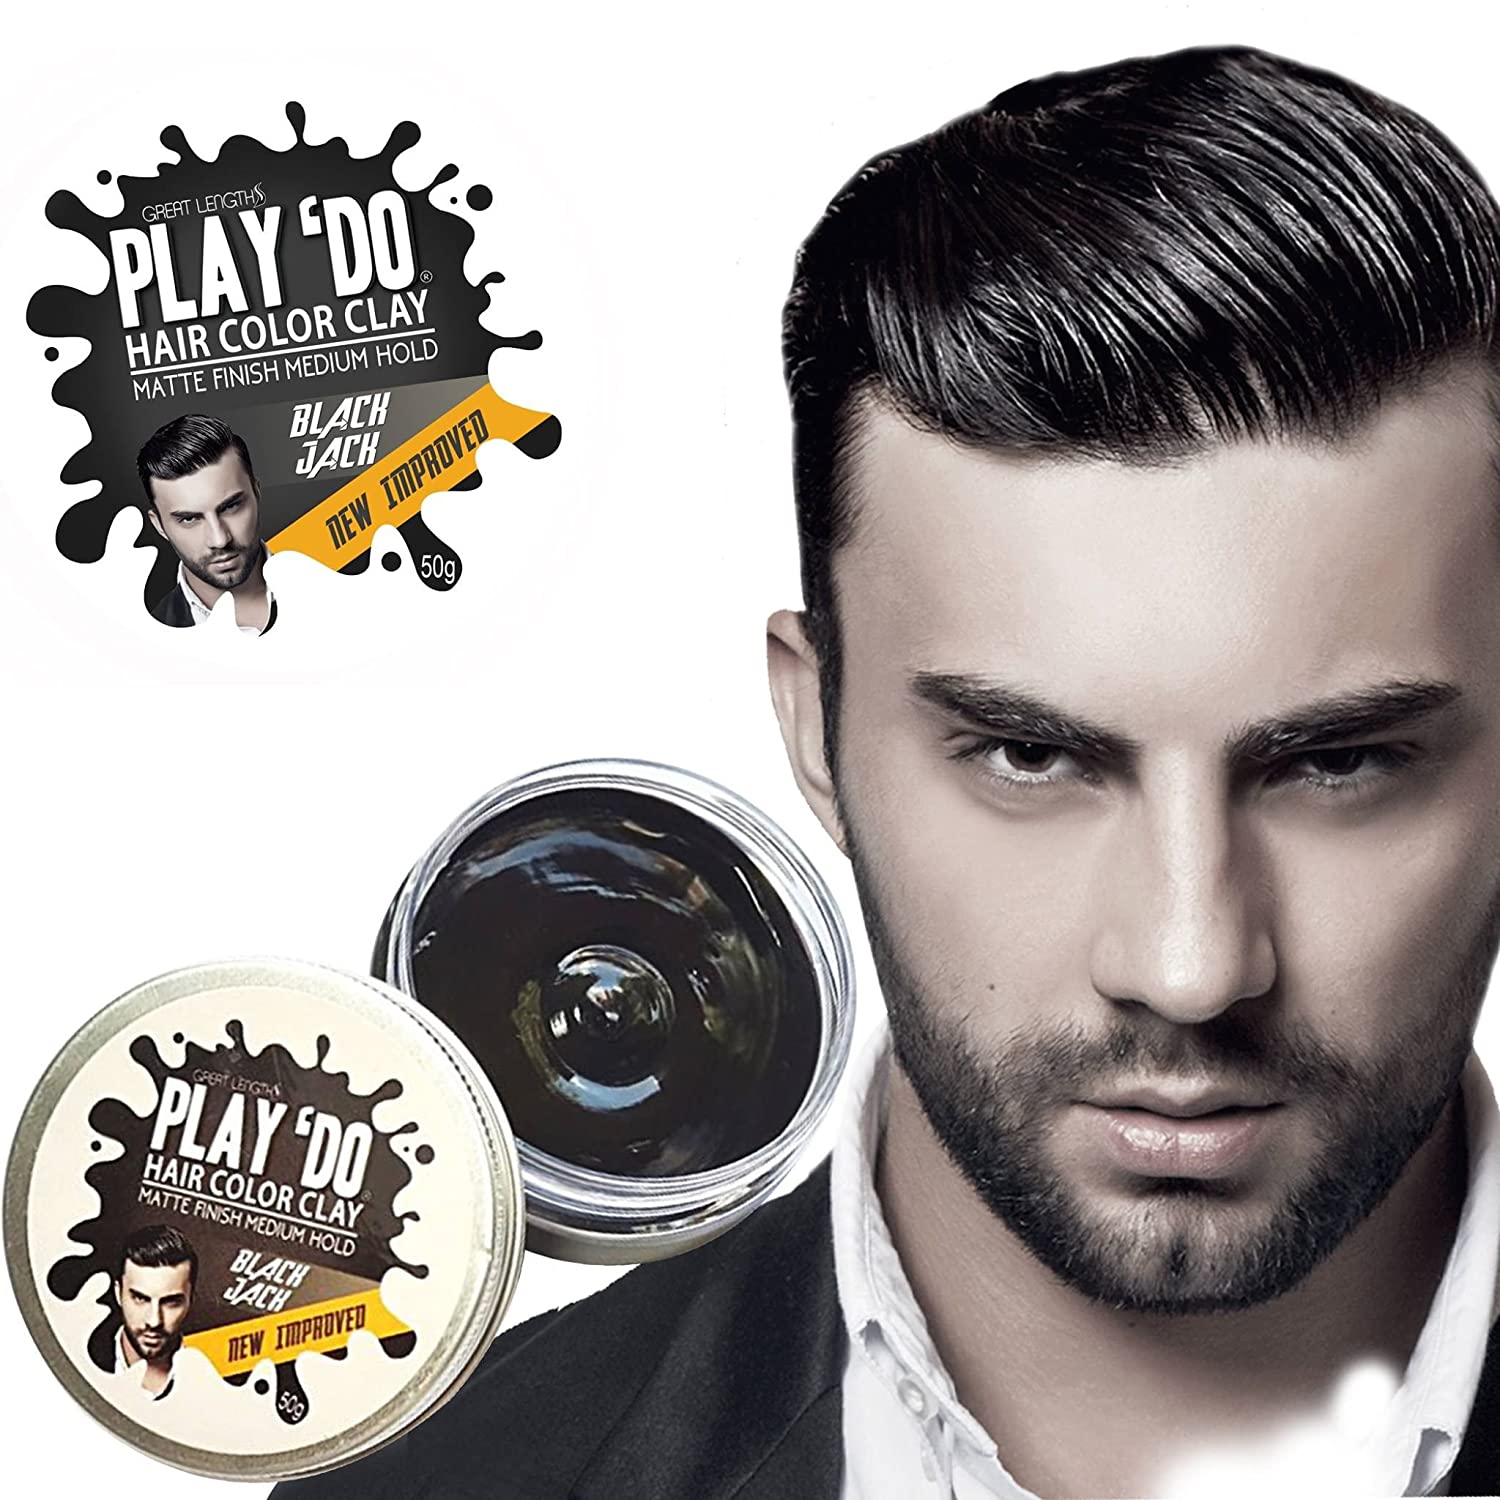 Play \u0027Do Temporary Hair Color, Hair Wax, Hair Clay, Mens Grooming, Pomade,  Black hair dye(1.8 ounces)